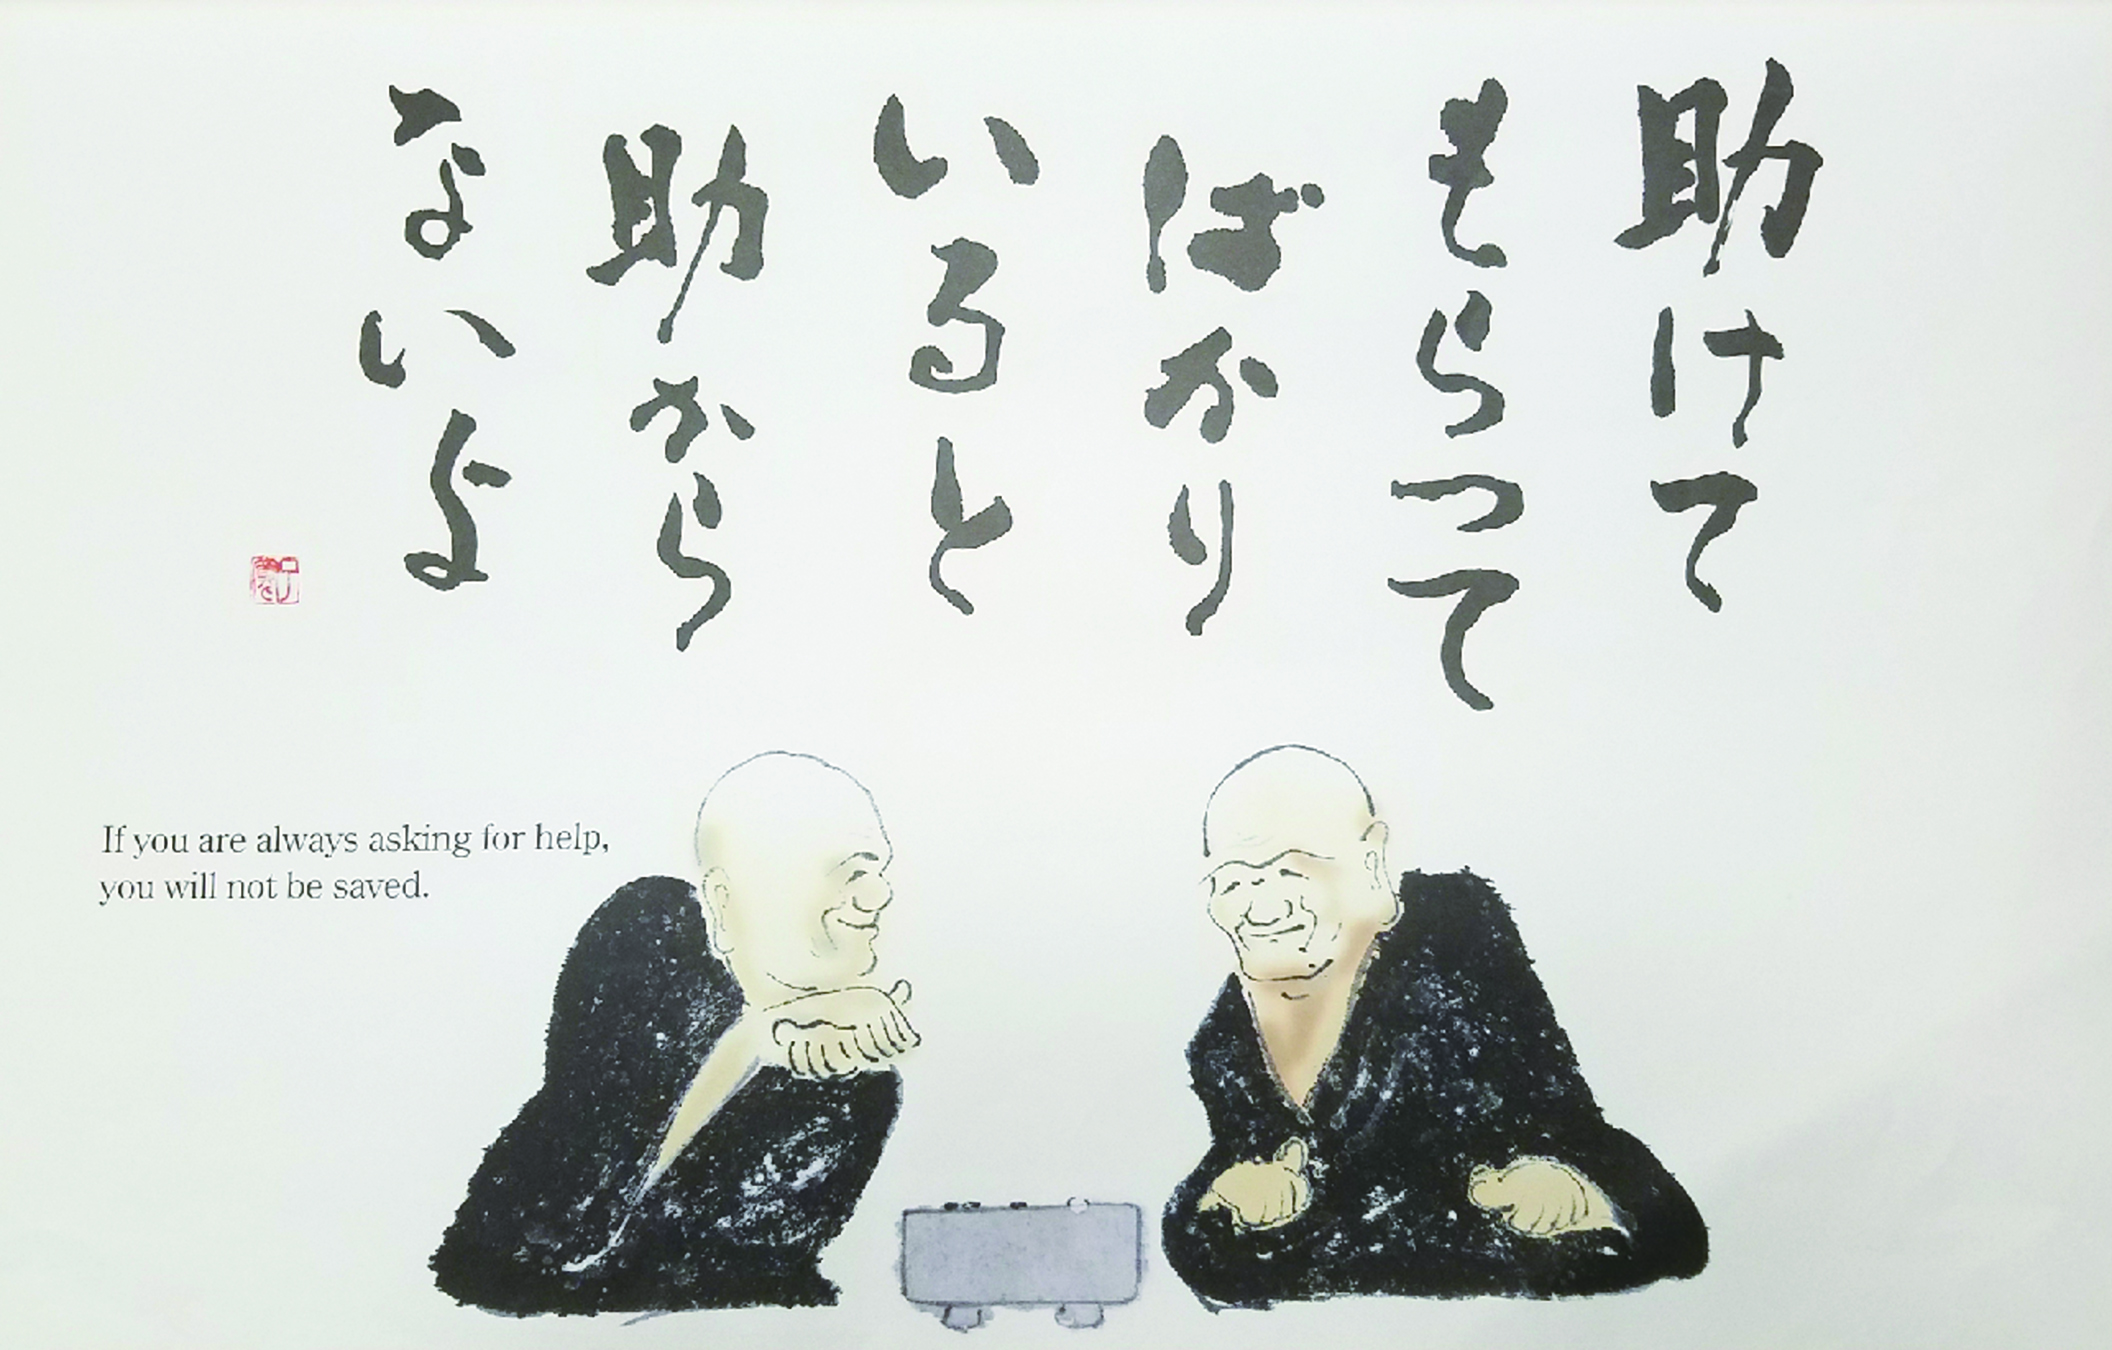 Comic image of Shushin, May 5, 2017 Issue